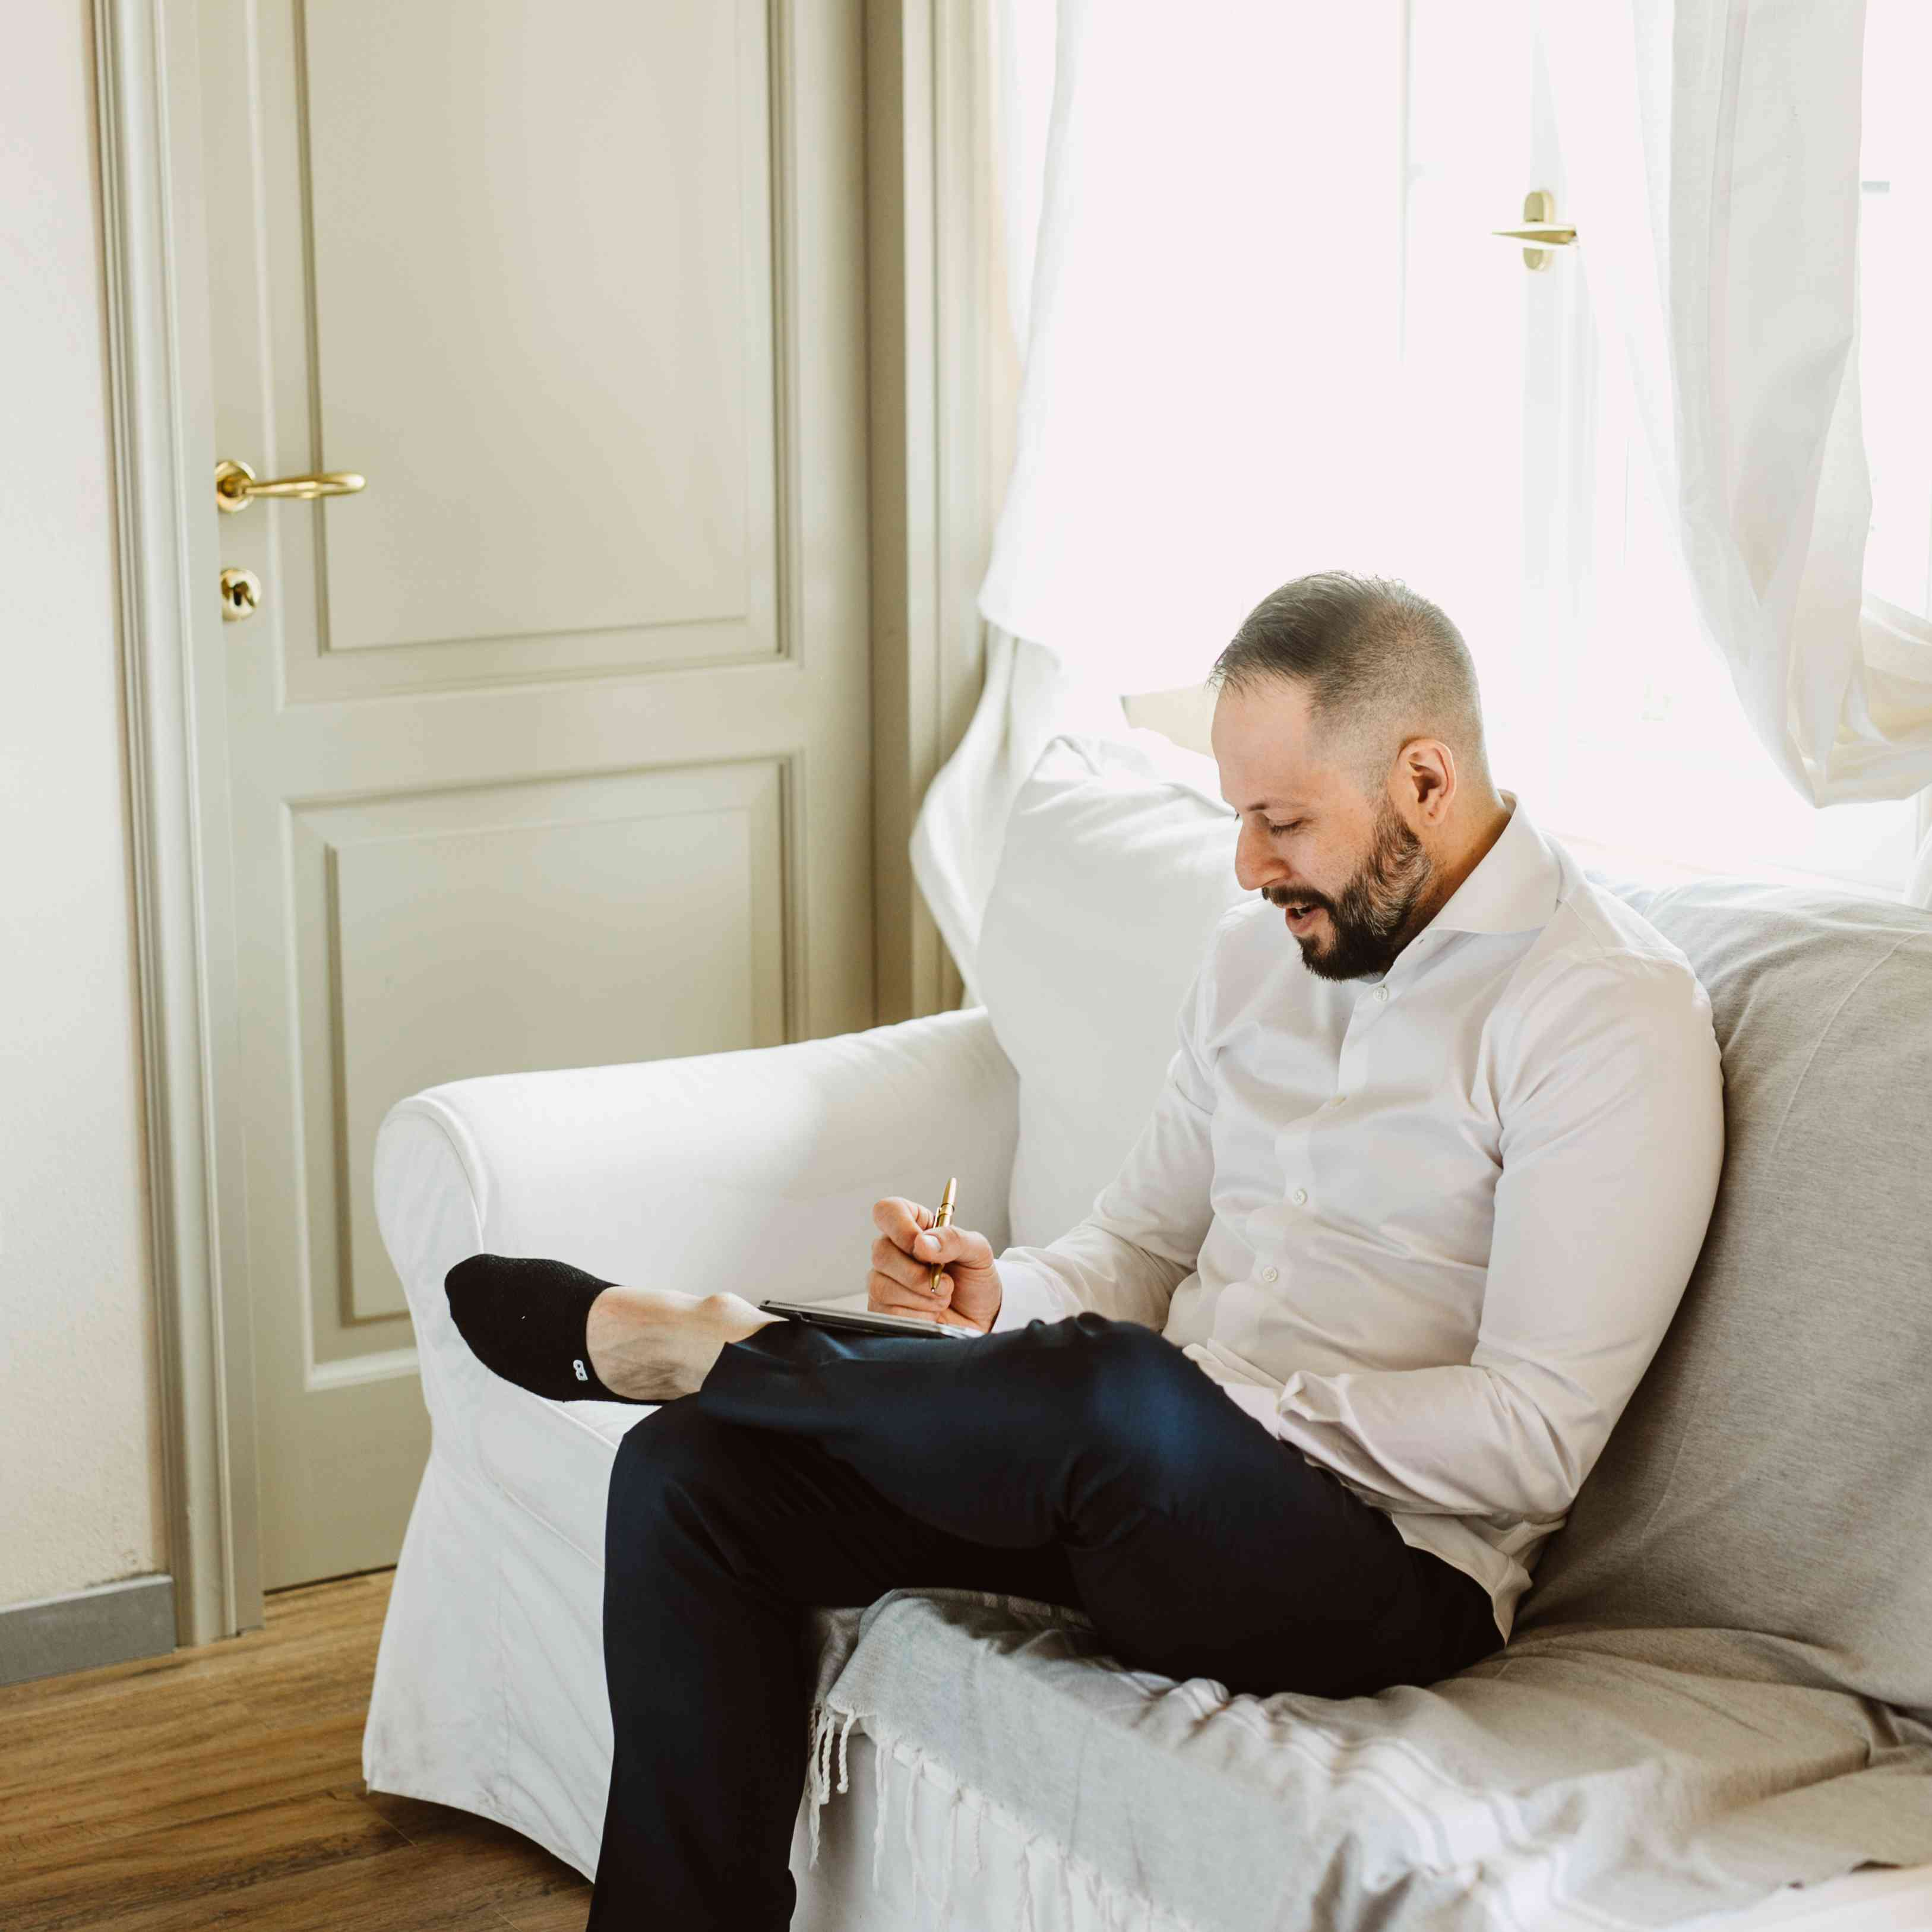 Man sitting on couch signing paperwork